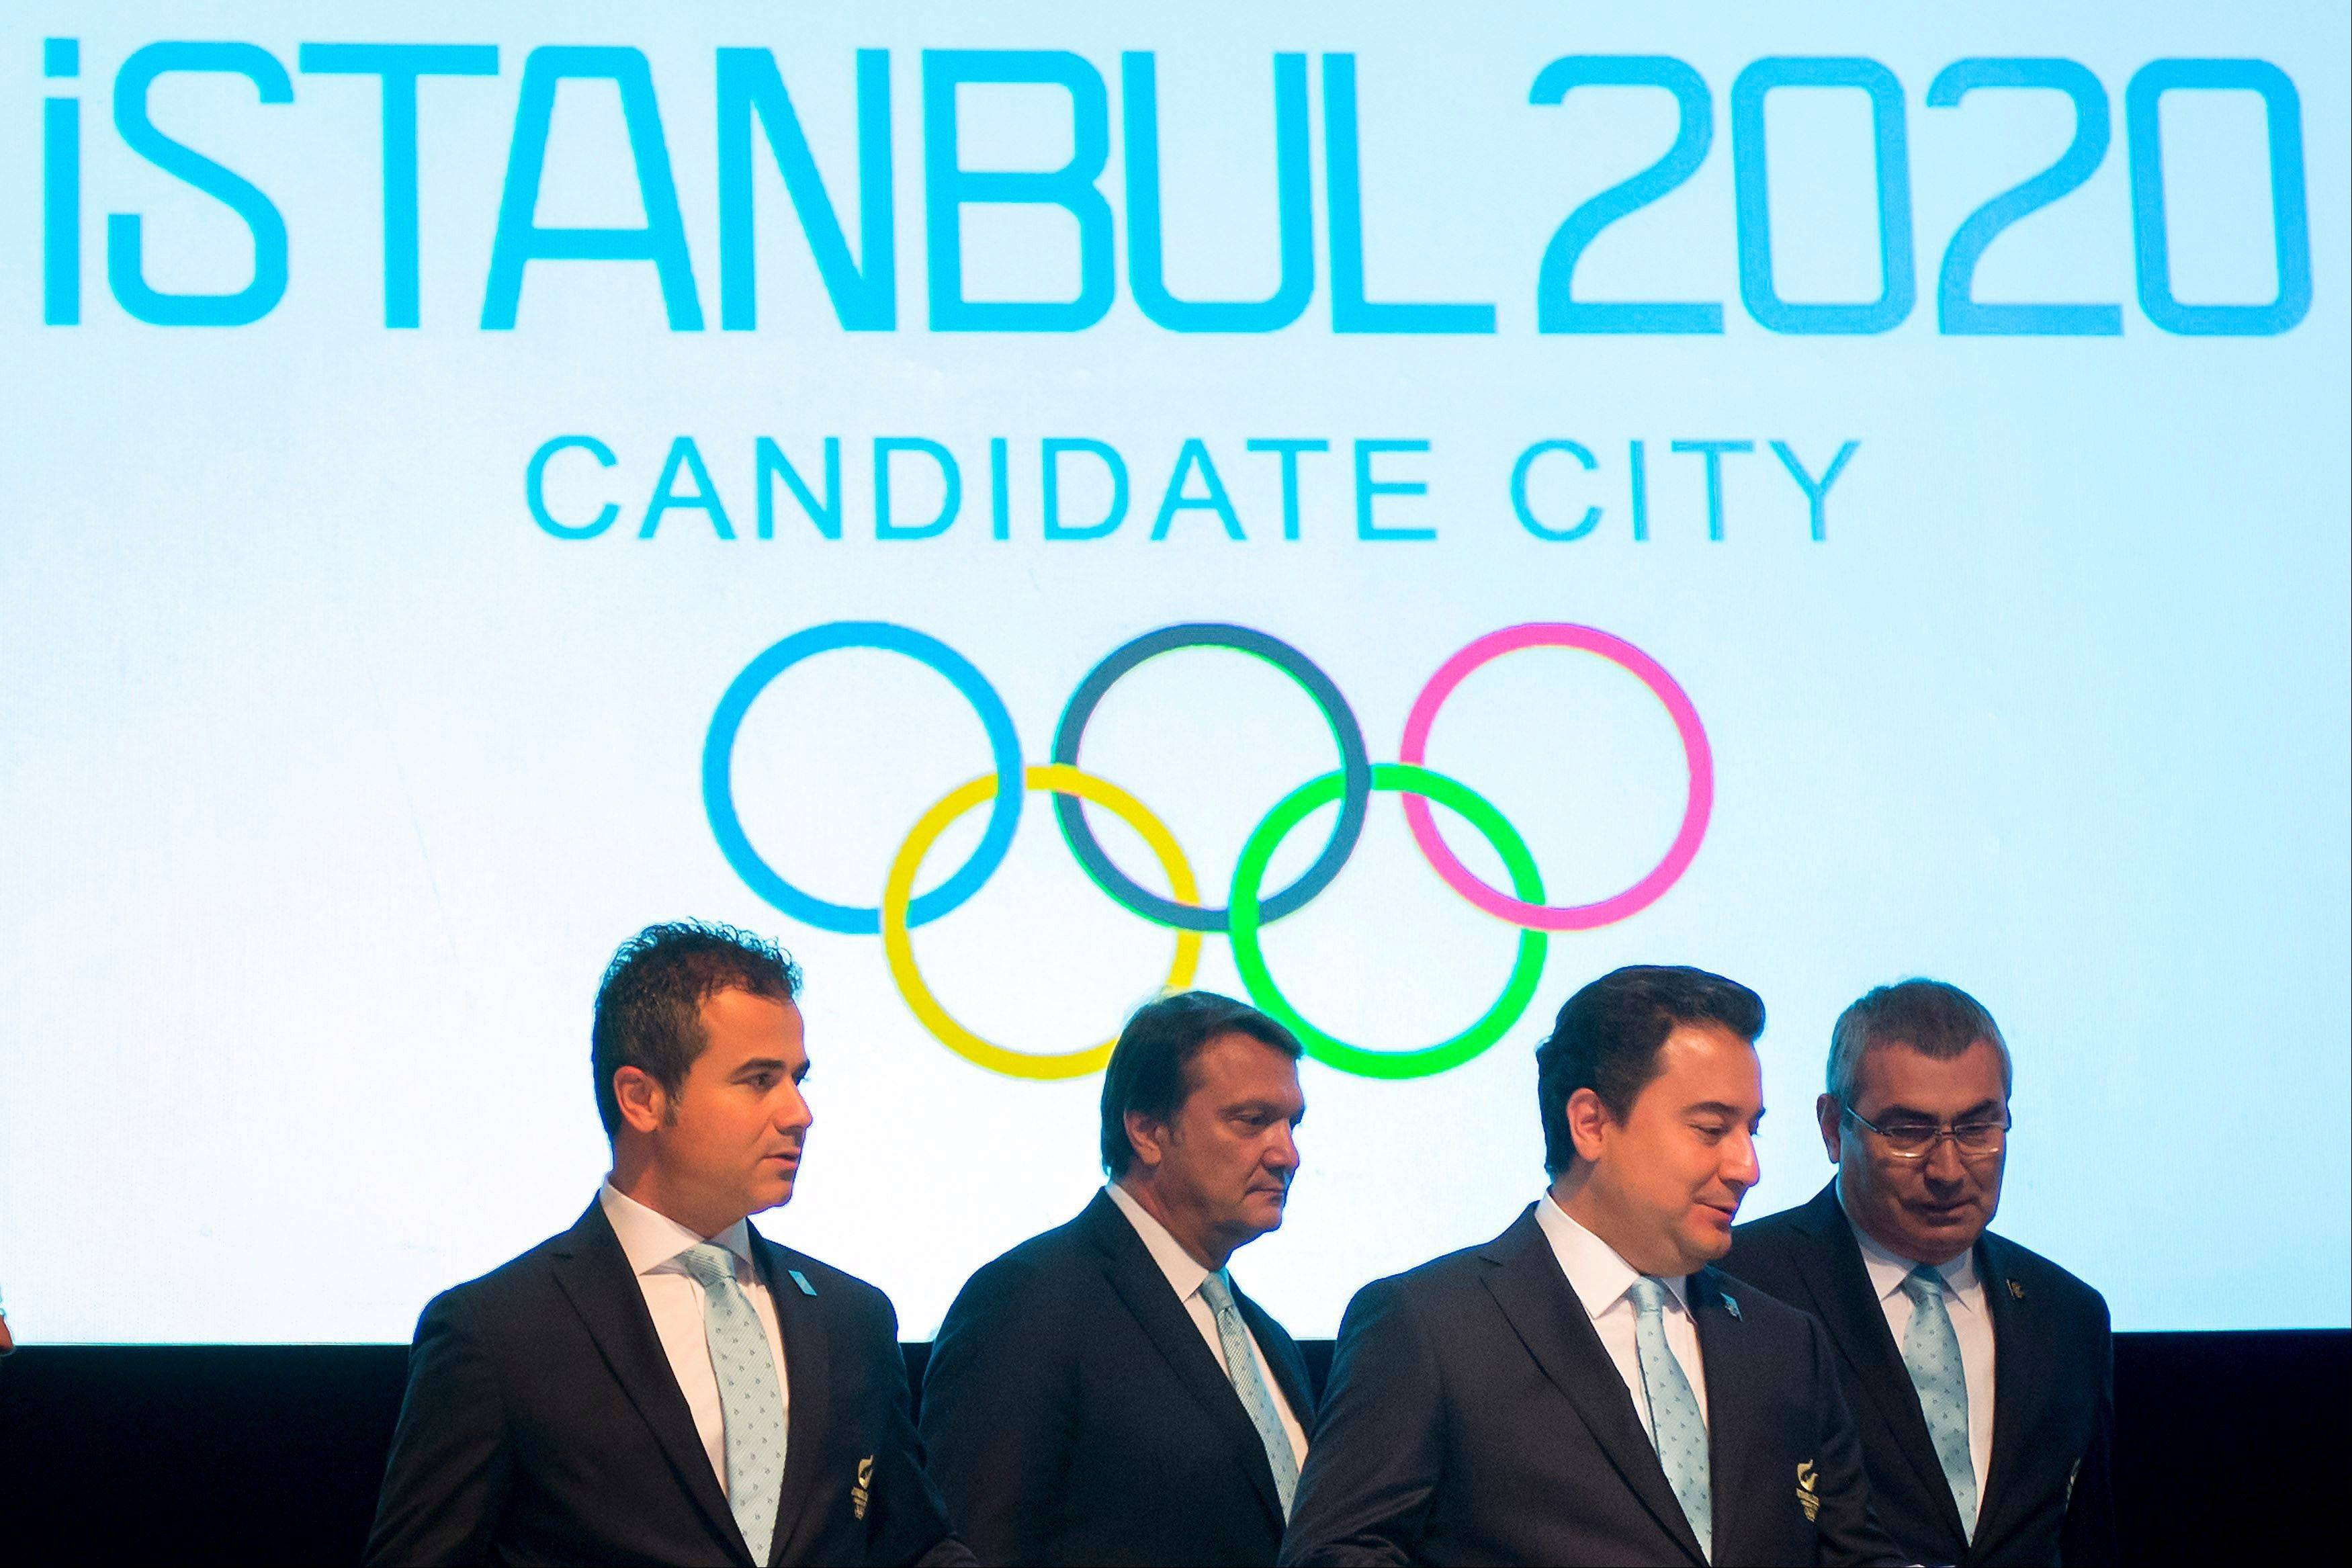 Istanbul, Madrid and Tokyo are laying out their plans on Wednesday to the general assembly of the International Olympic Committee, the first time they have made presentations directly to the electorate.